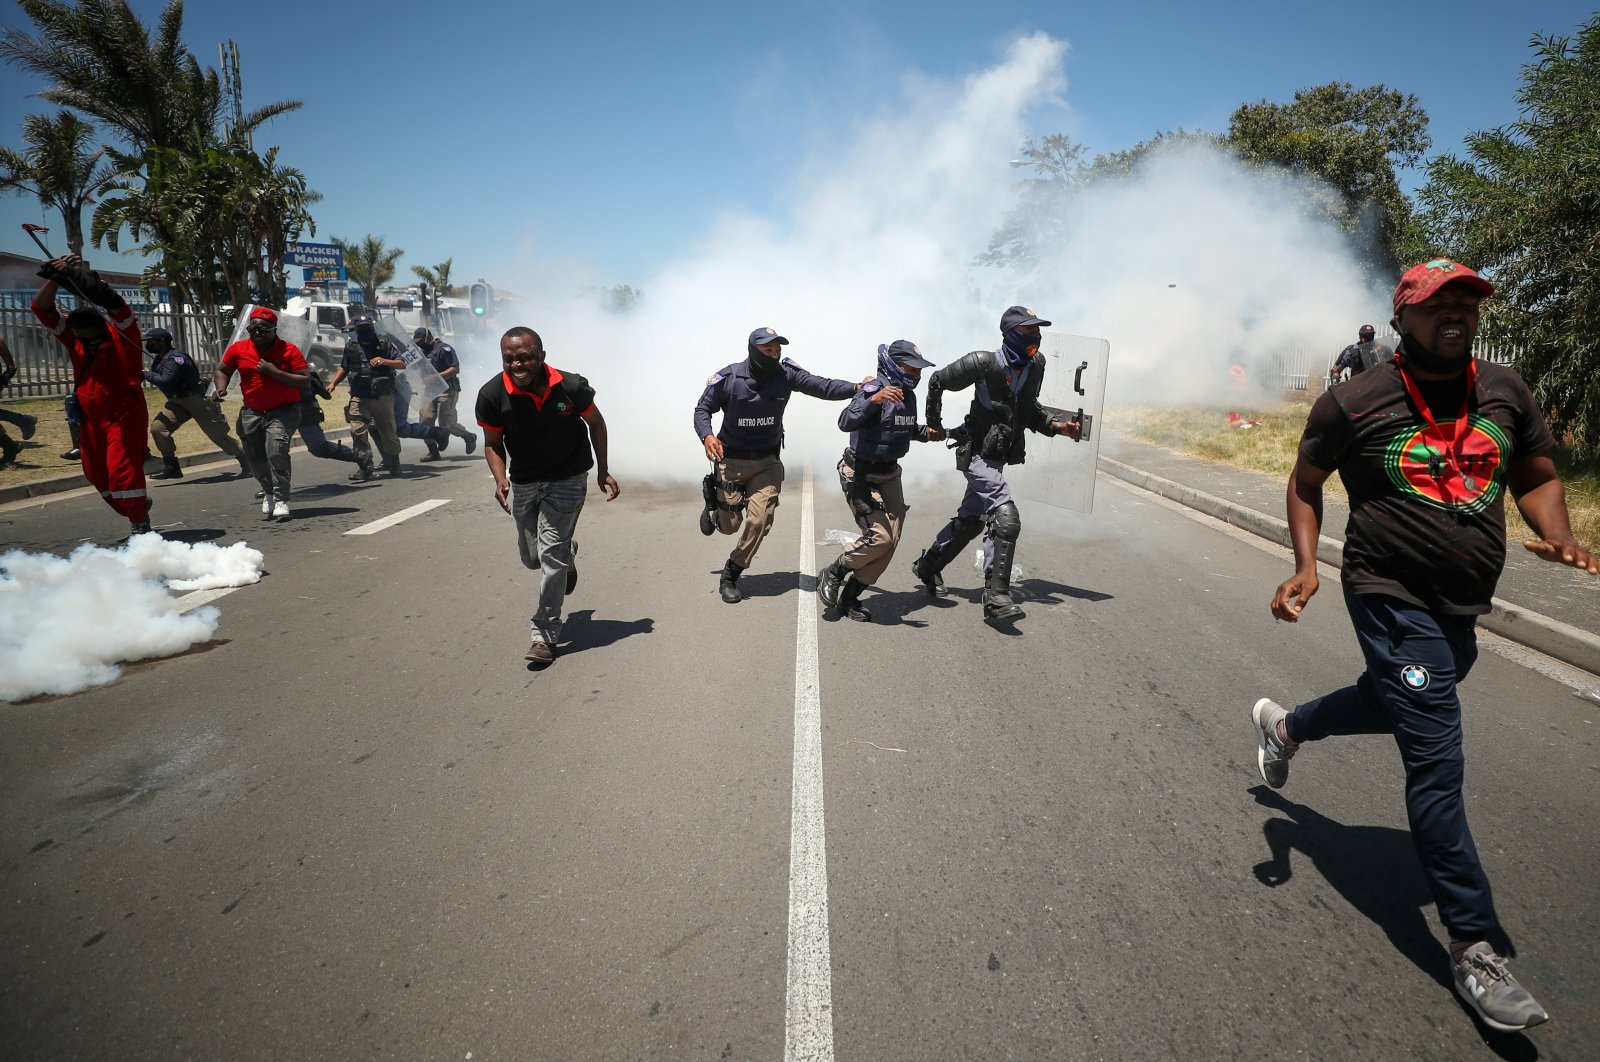 People run away from tear gas during the opposition Economic Freedom Fighters party's protest against alleged racism outside Brackenfell High School, Cape Town, South Africa, Nov. 20, 2020. (Reuters Photo)